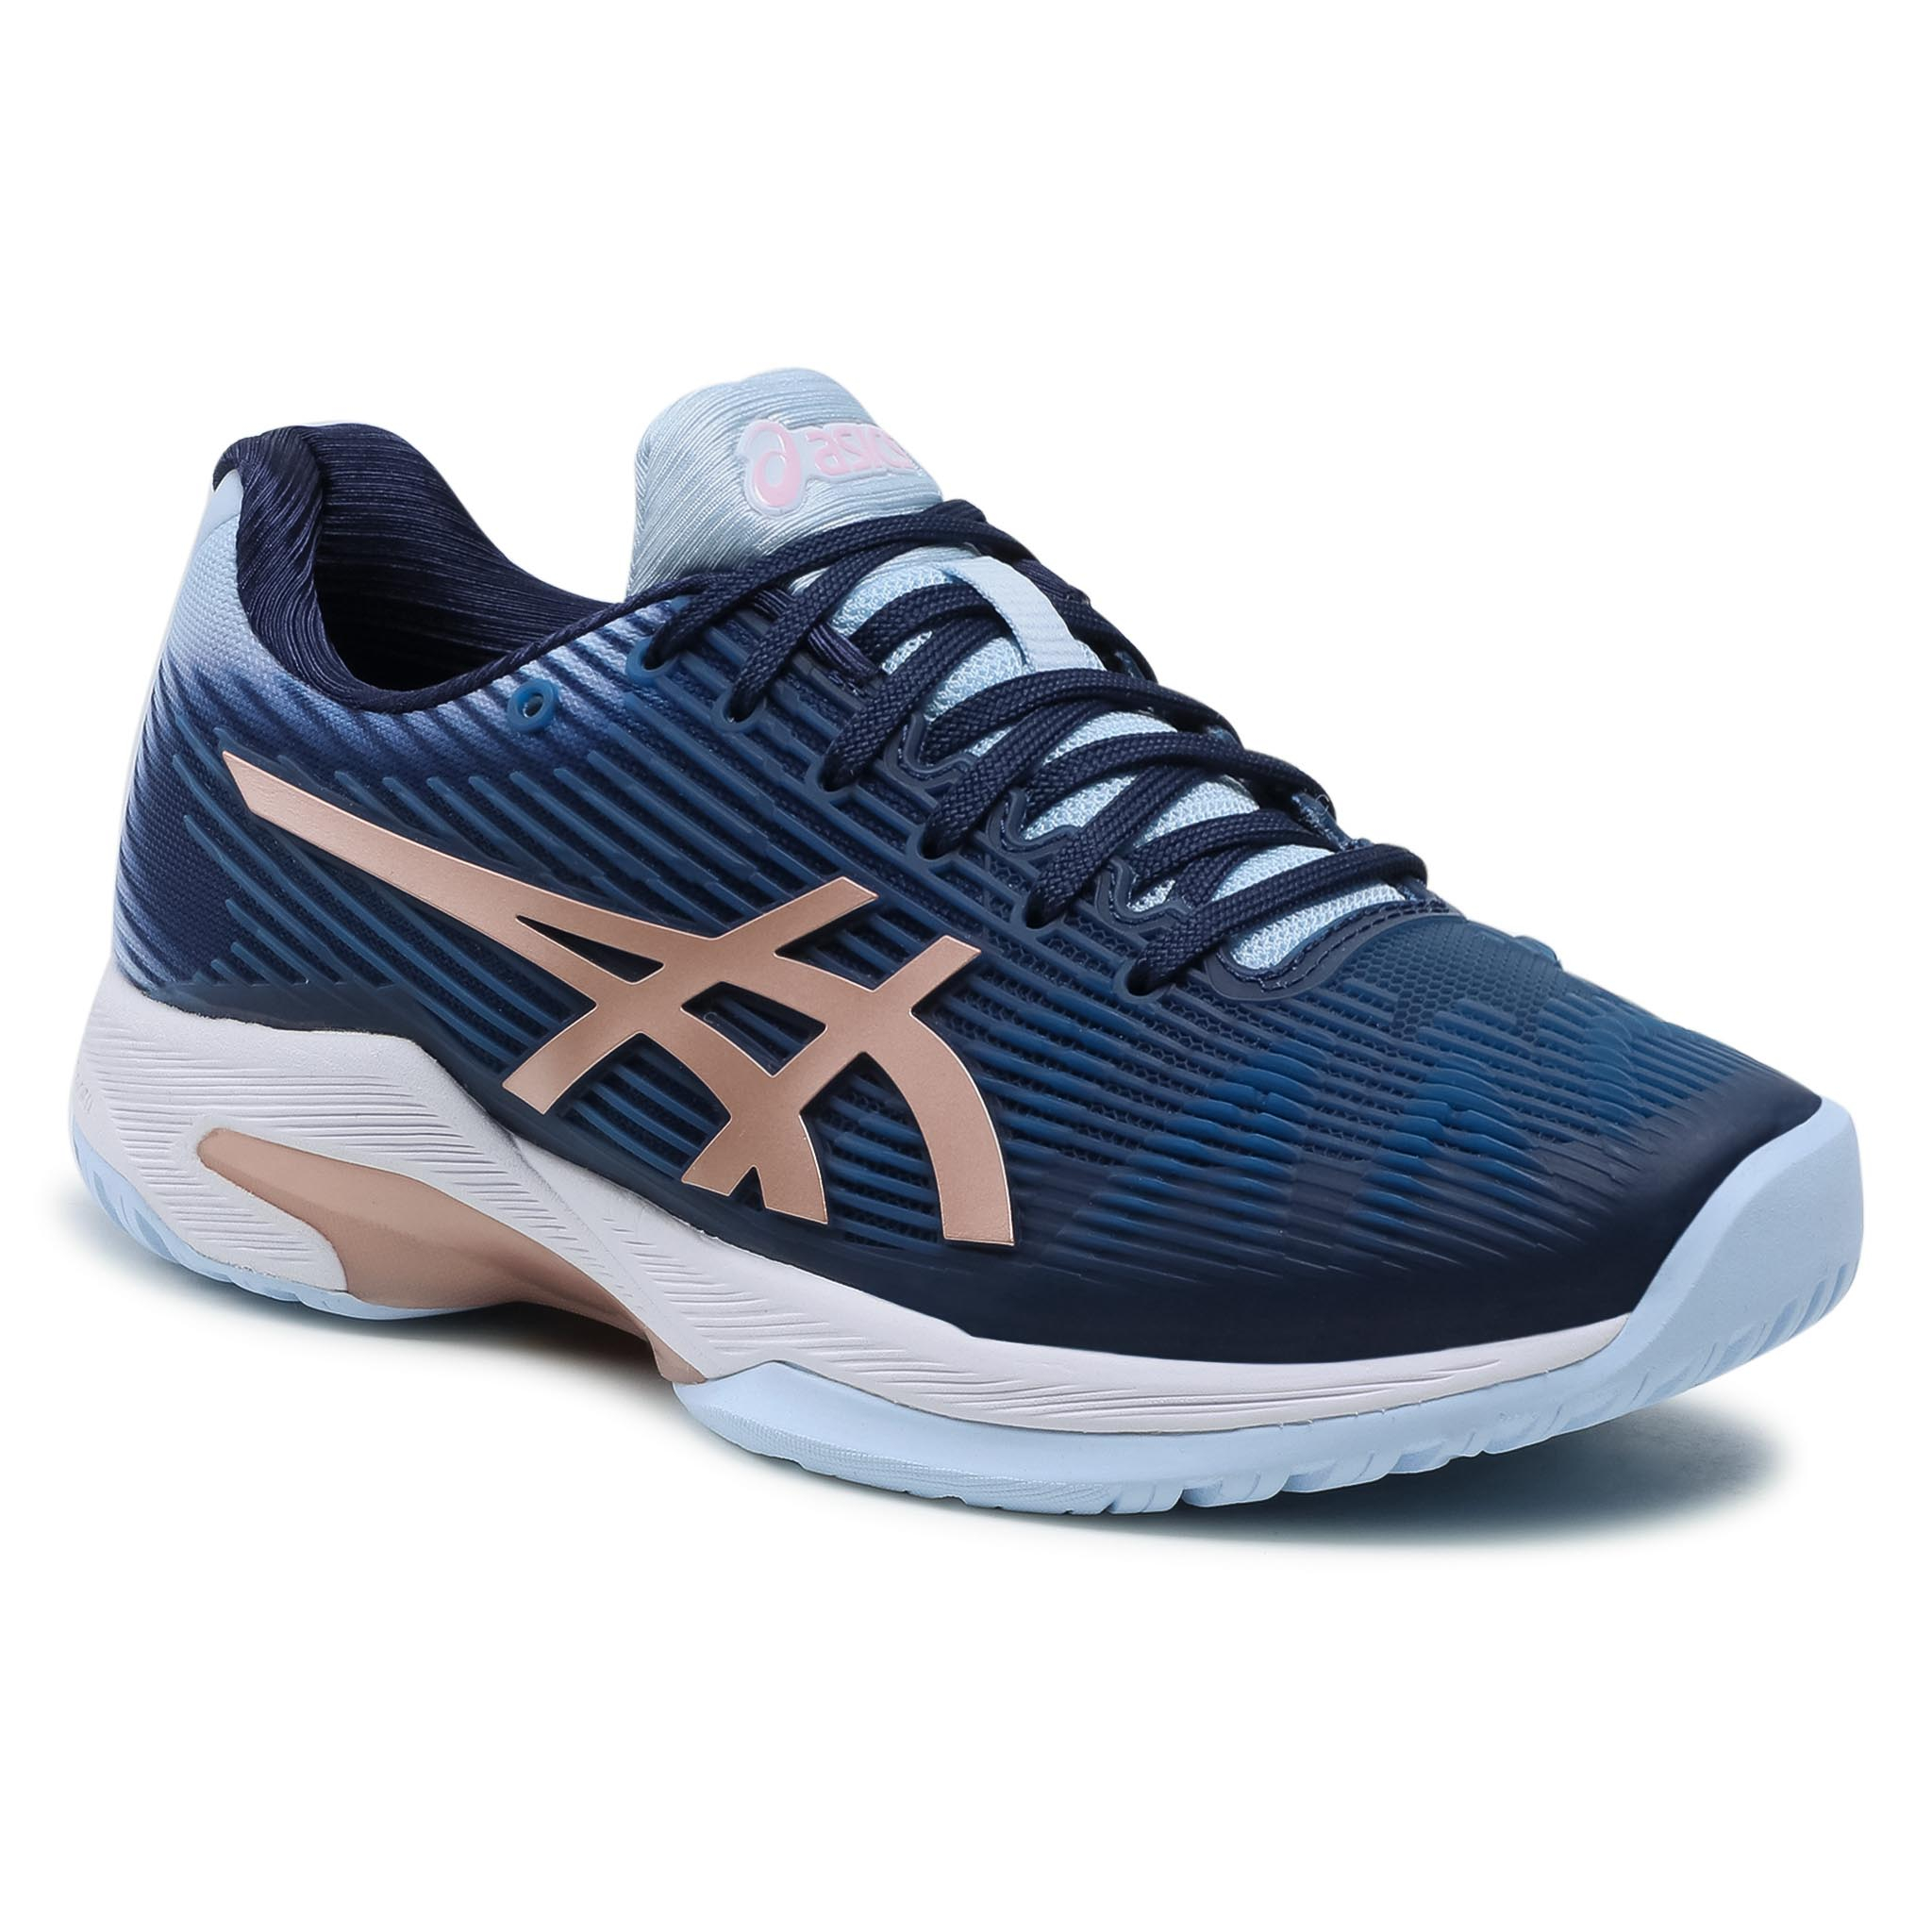 Batai ASICS - Solution Speed Ff 1042A002 Peacoat/Rose Gold 413